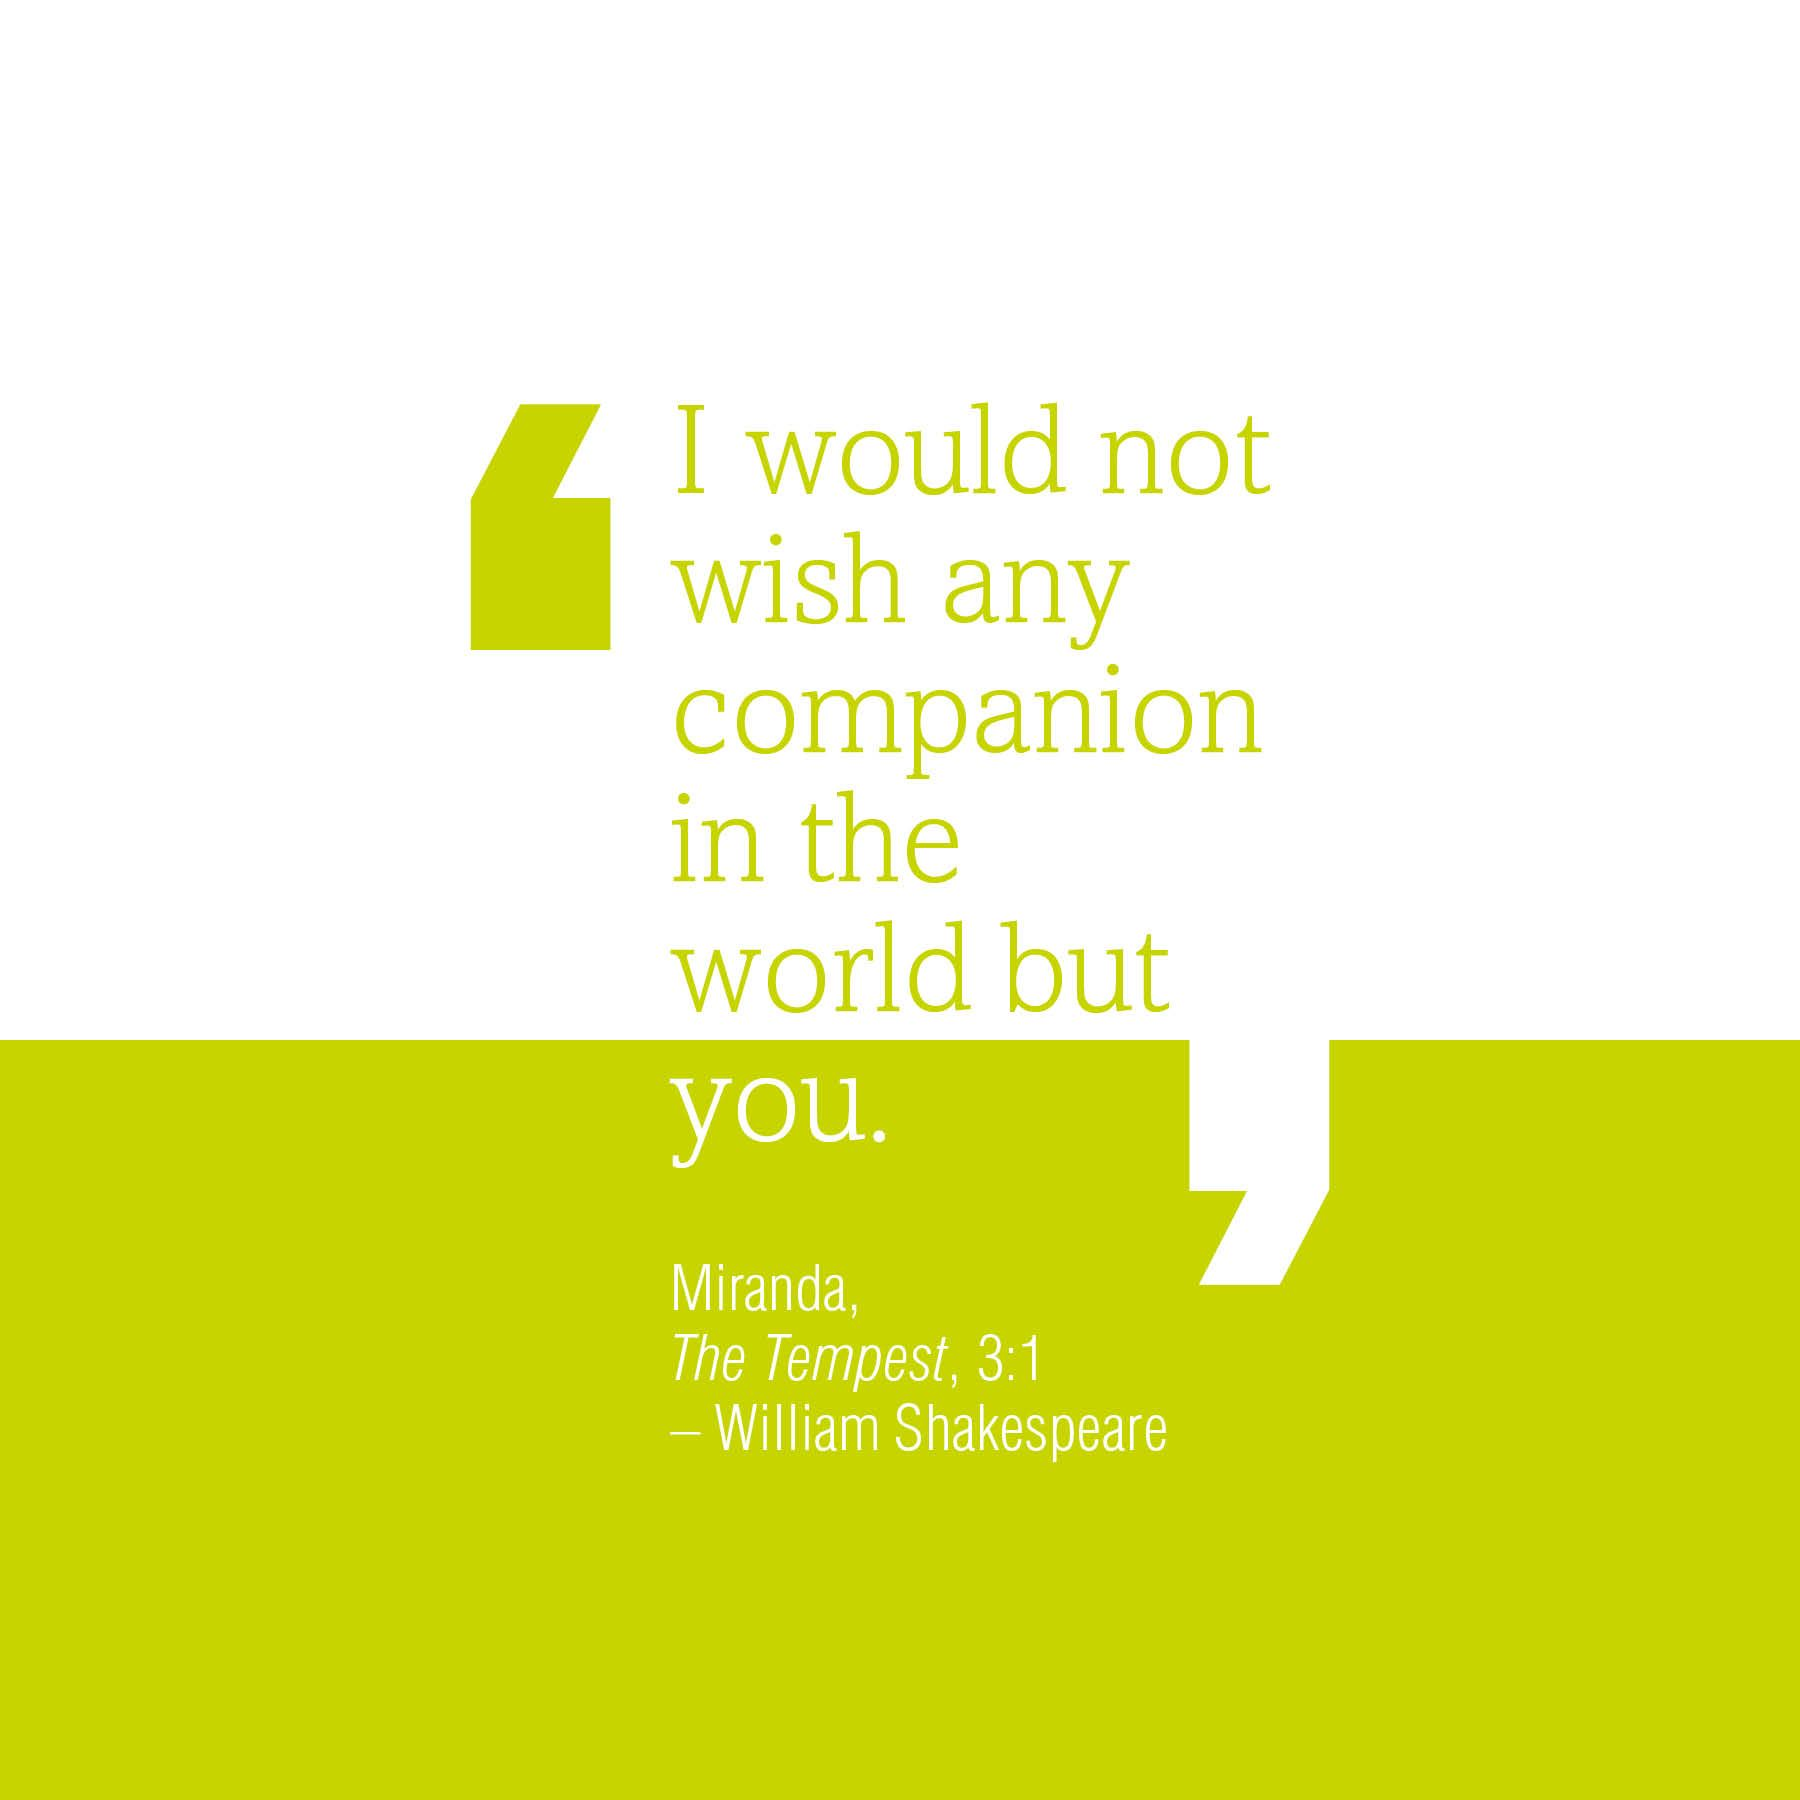 A rather romantic Shakespeare quote from The Tempest for Valentine's Day.